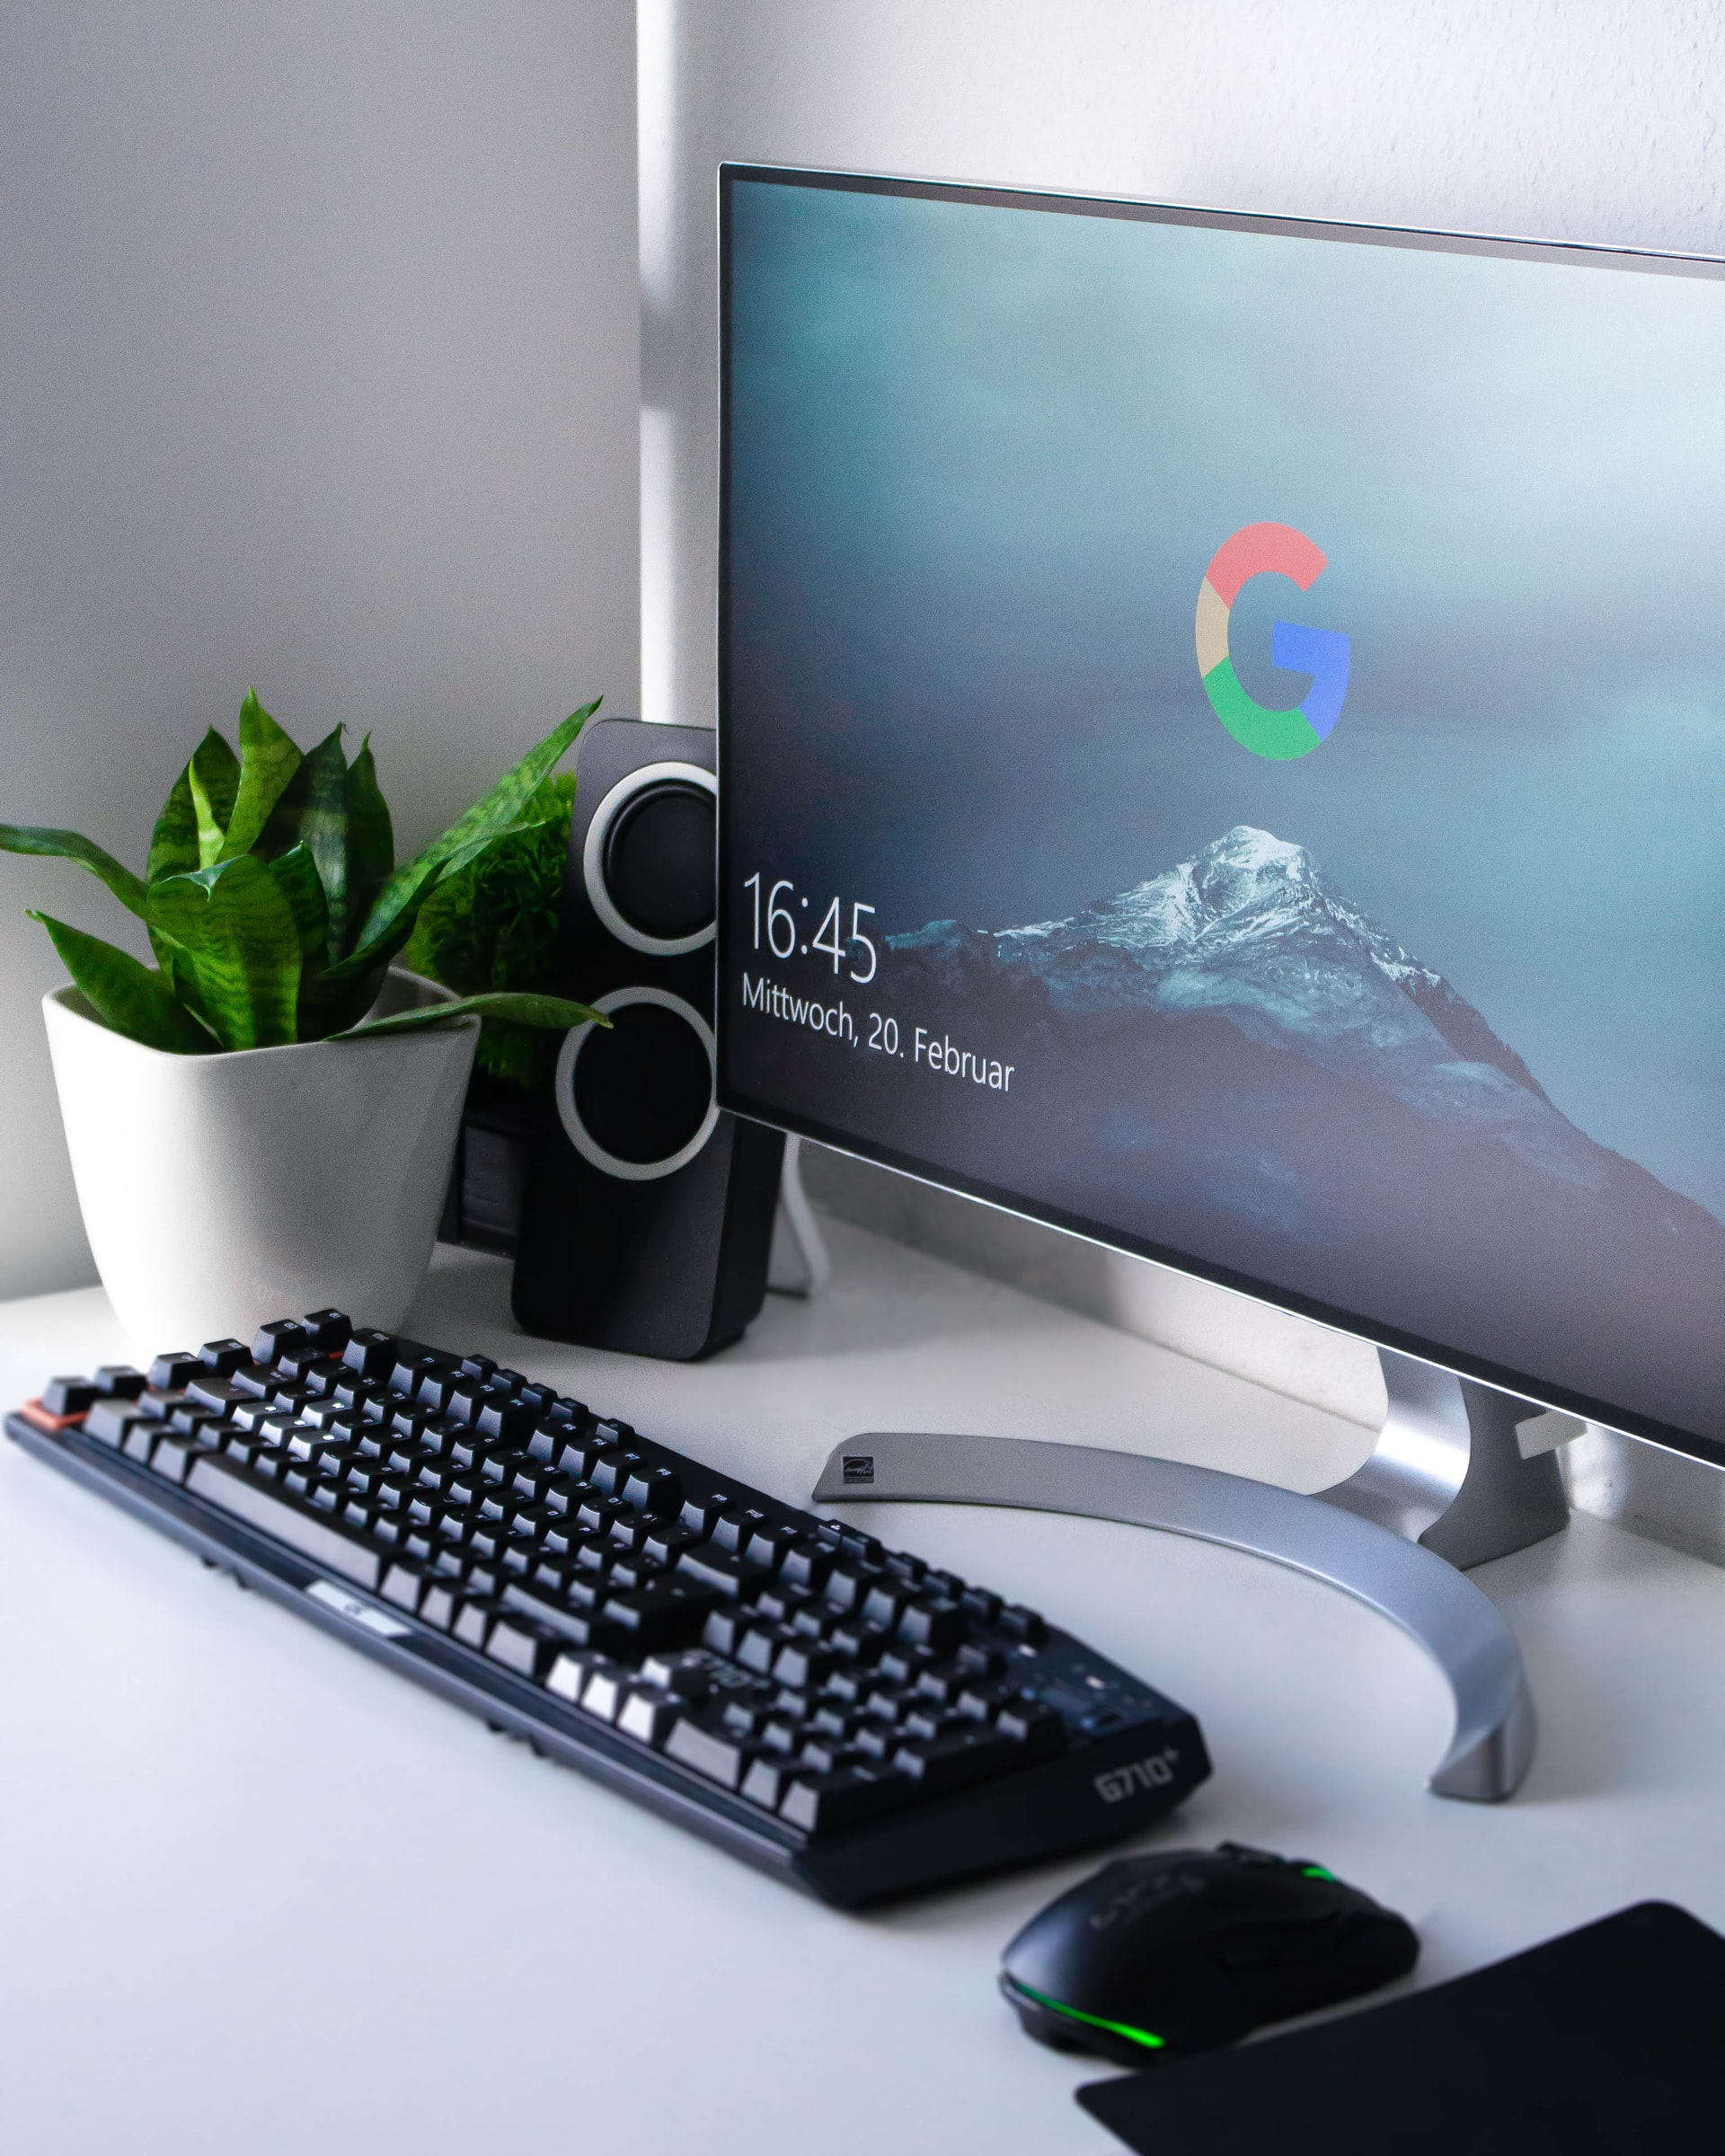 Worldwide PC Shipments Grew 10.7% in Q4 of 2020 and 4.8% for the Year